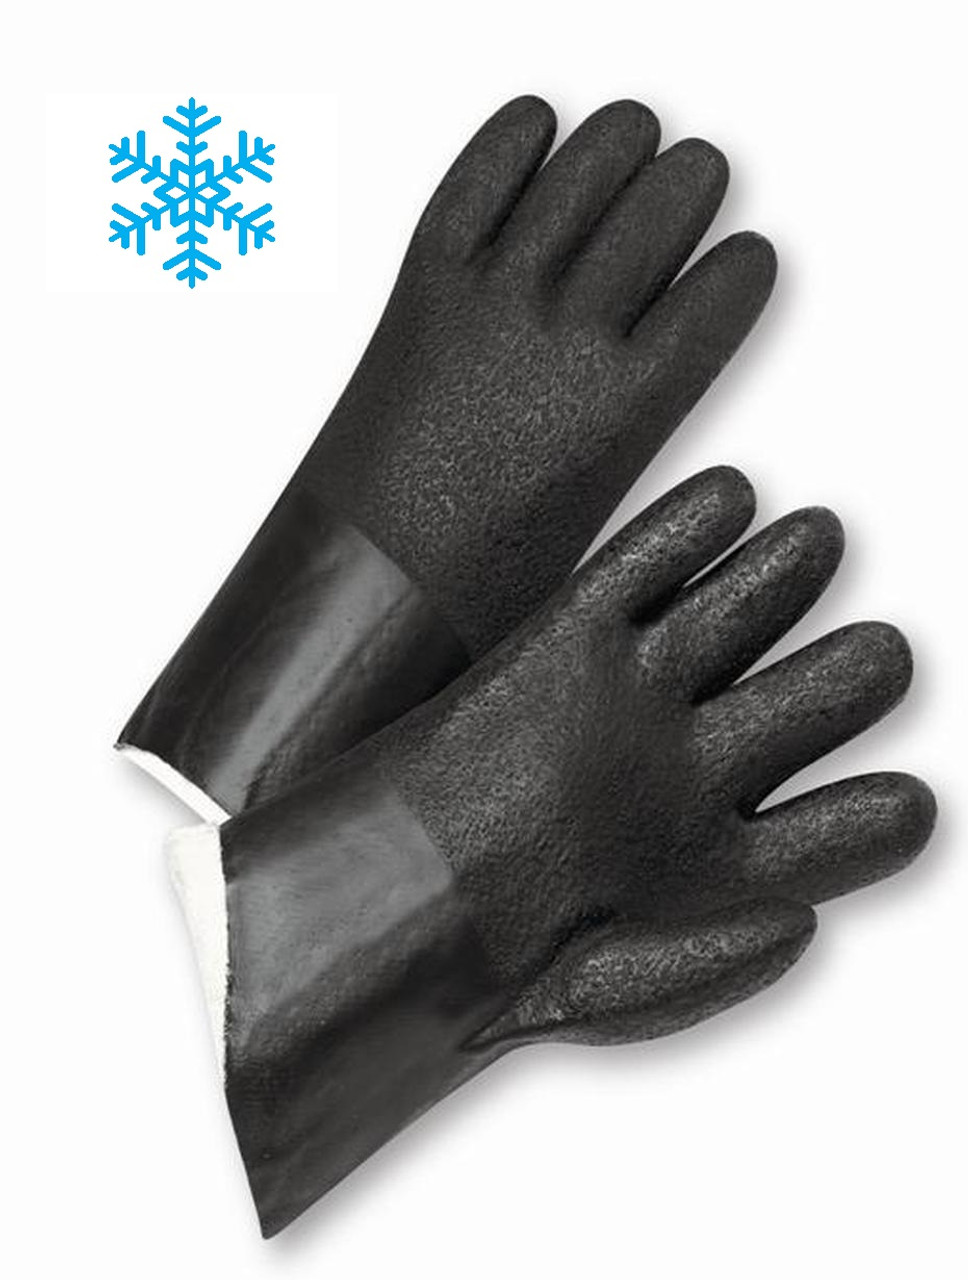 "12"" / 14"" Black Insulated Fully Coated PVC Gloves - Insulated Gloves  ## 260 ##"